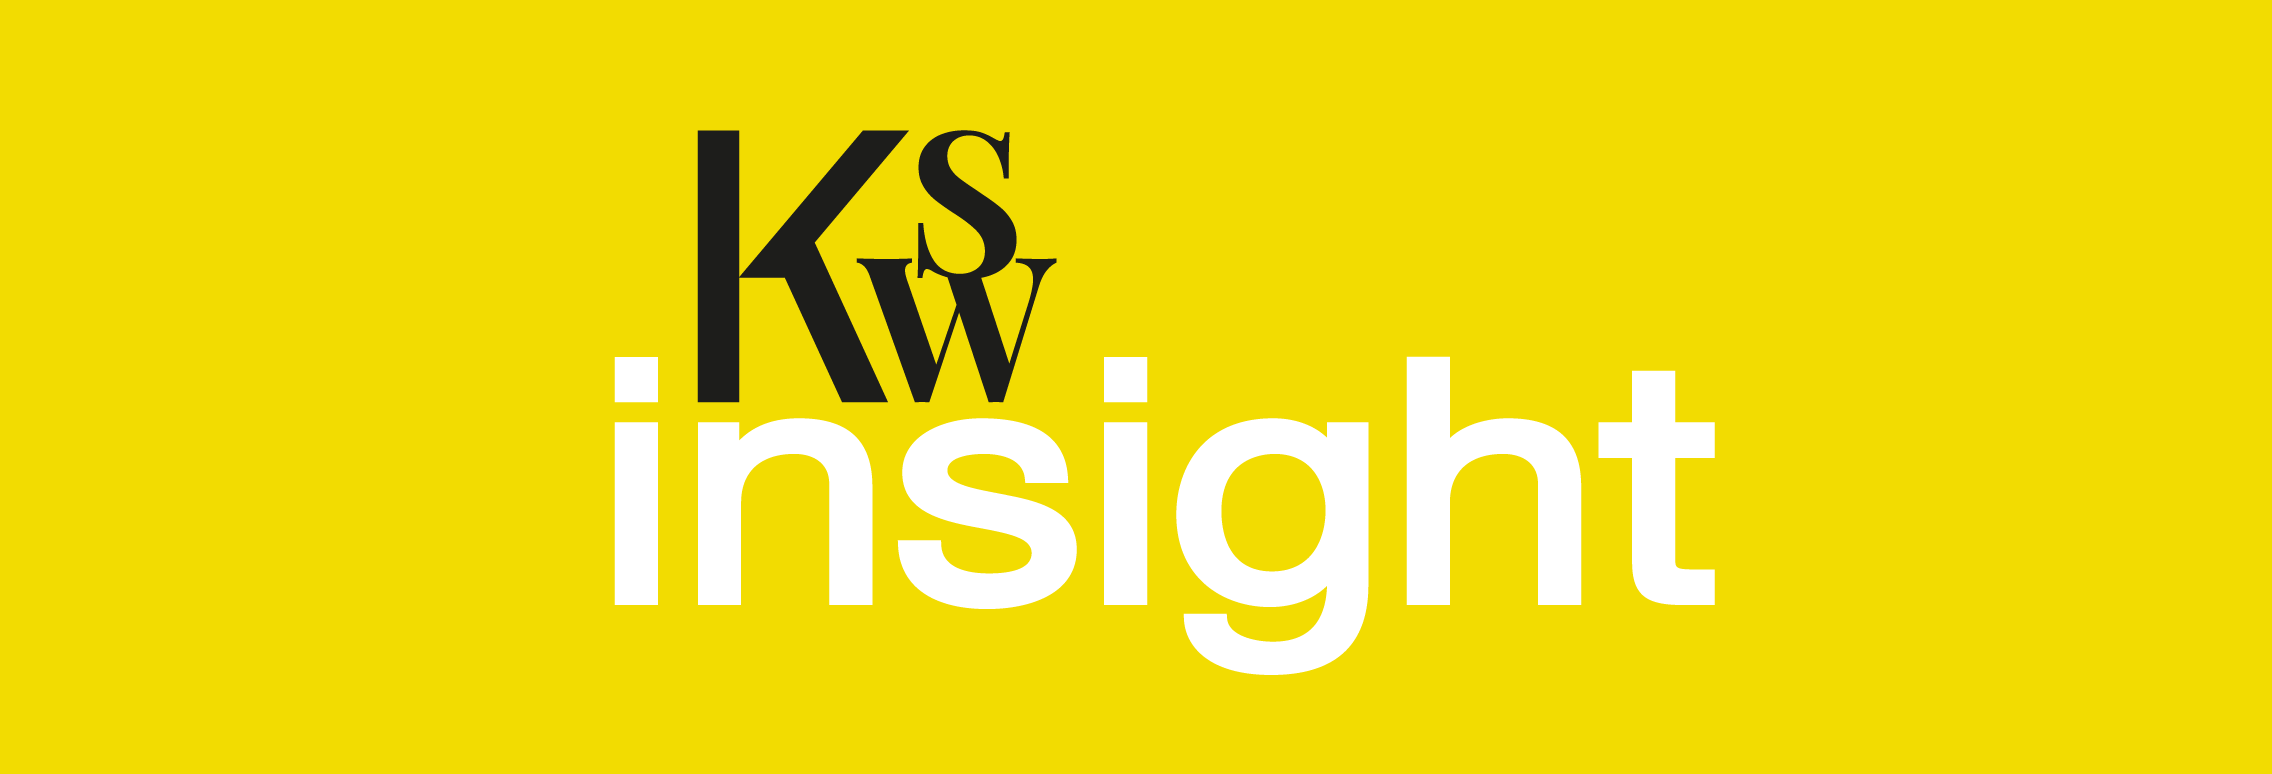 KSW Insight Newsletter | July 2021 Special Edition